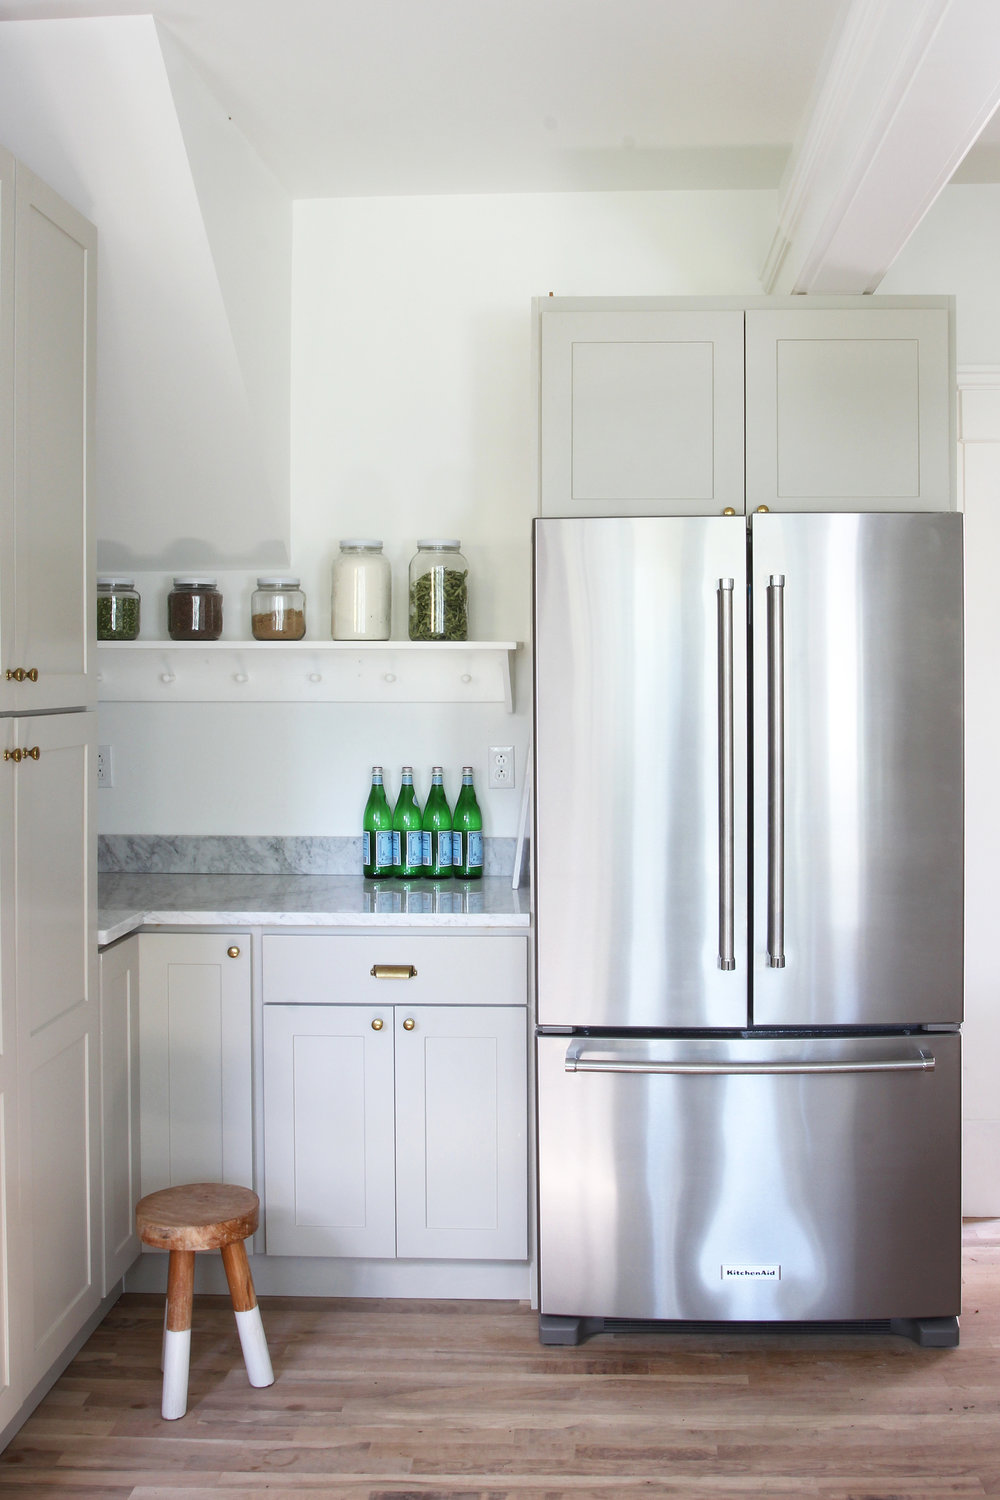 The Grit and Polish - Porch House Kitchen Aid Fridge.jpg